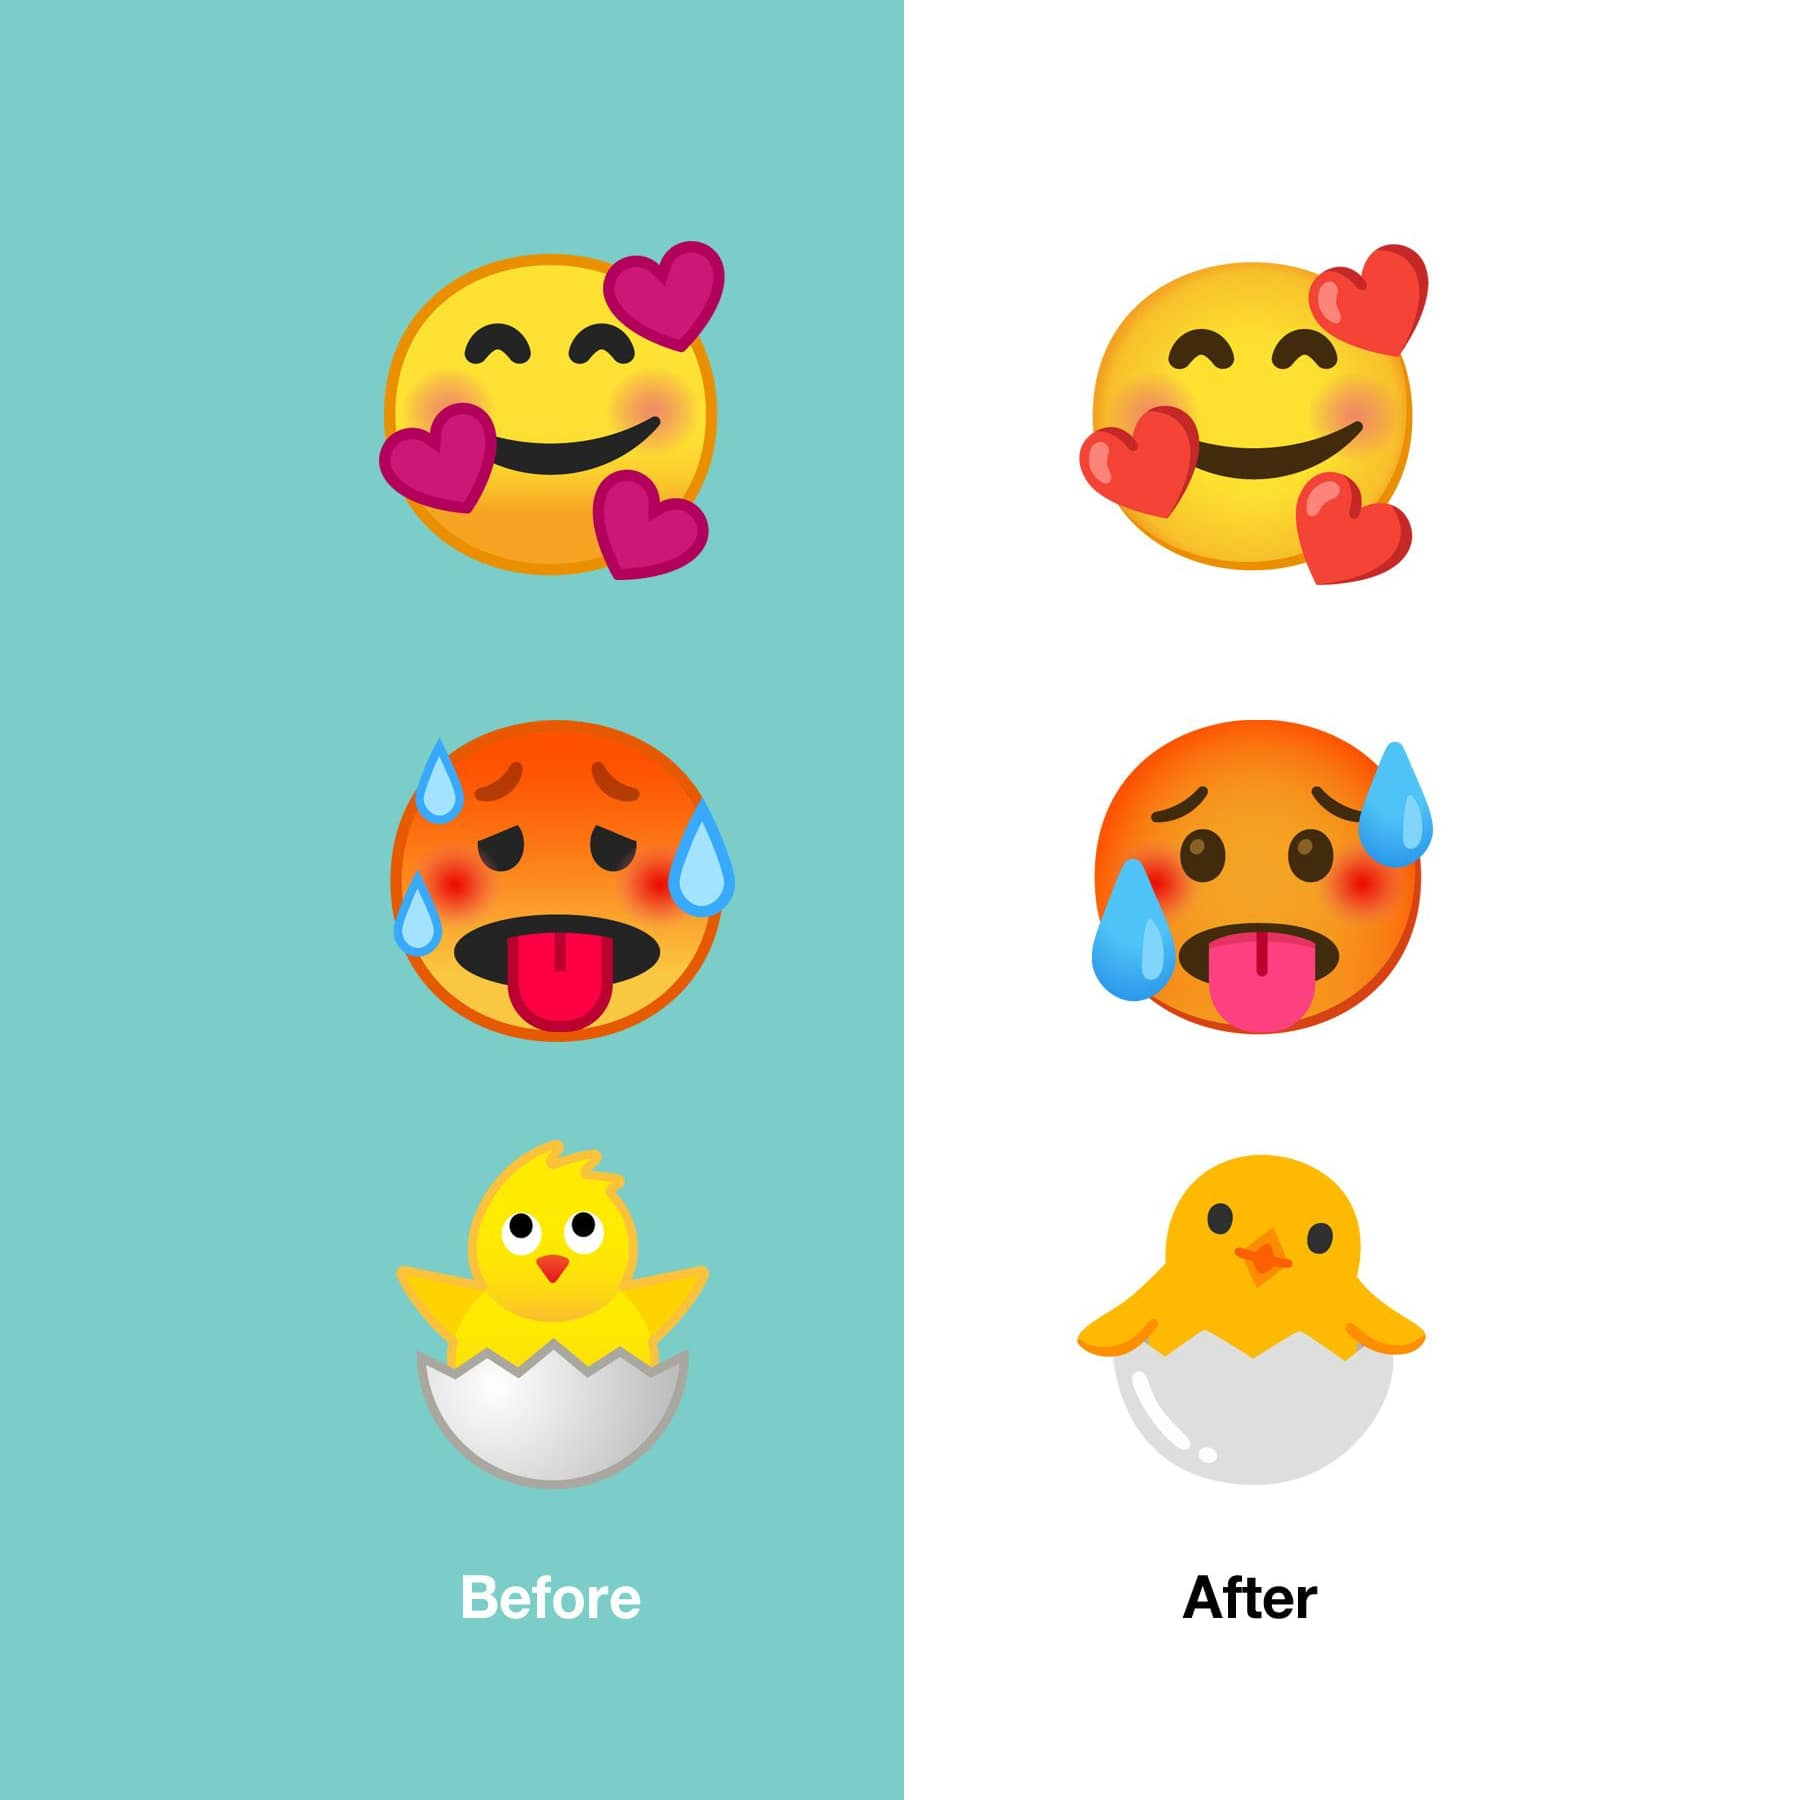 android-11-before-after-changes-examples-emojipedia